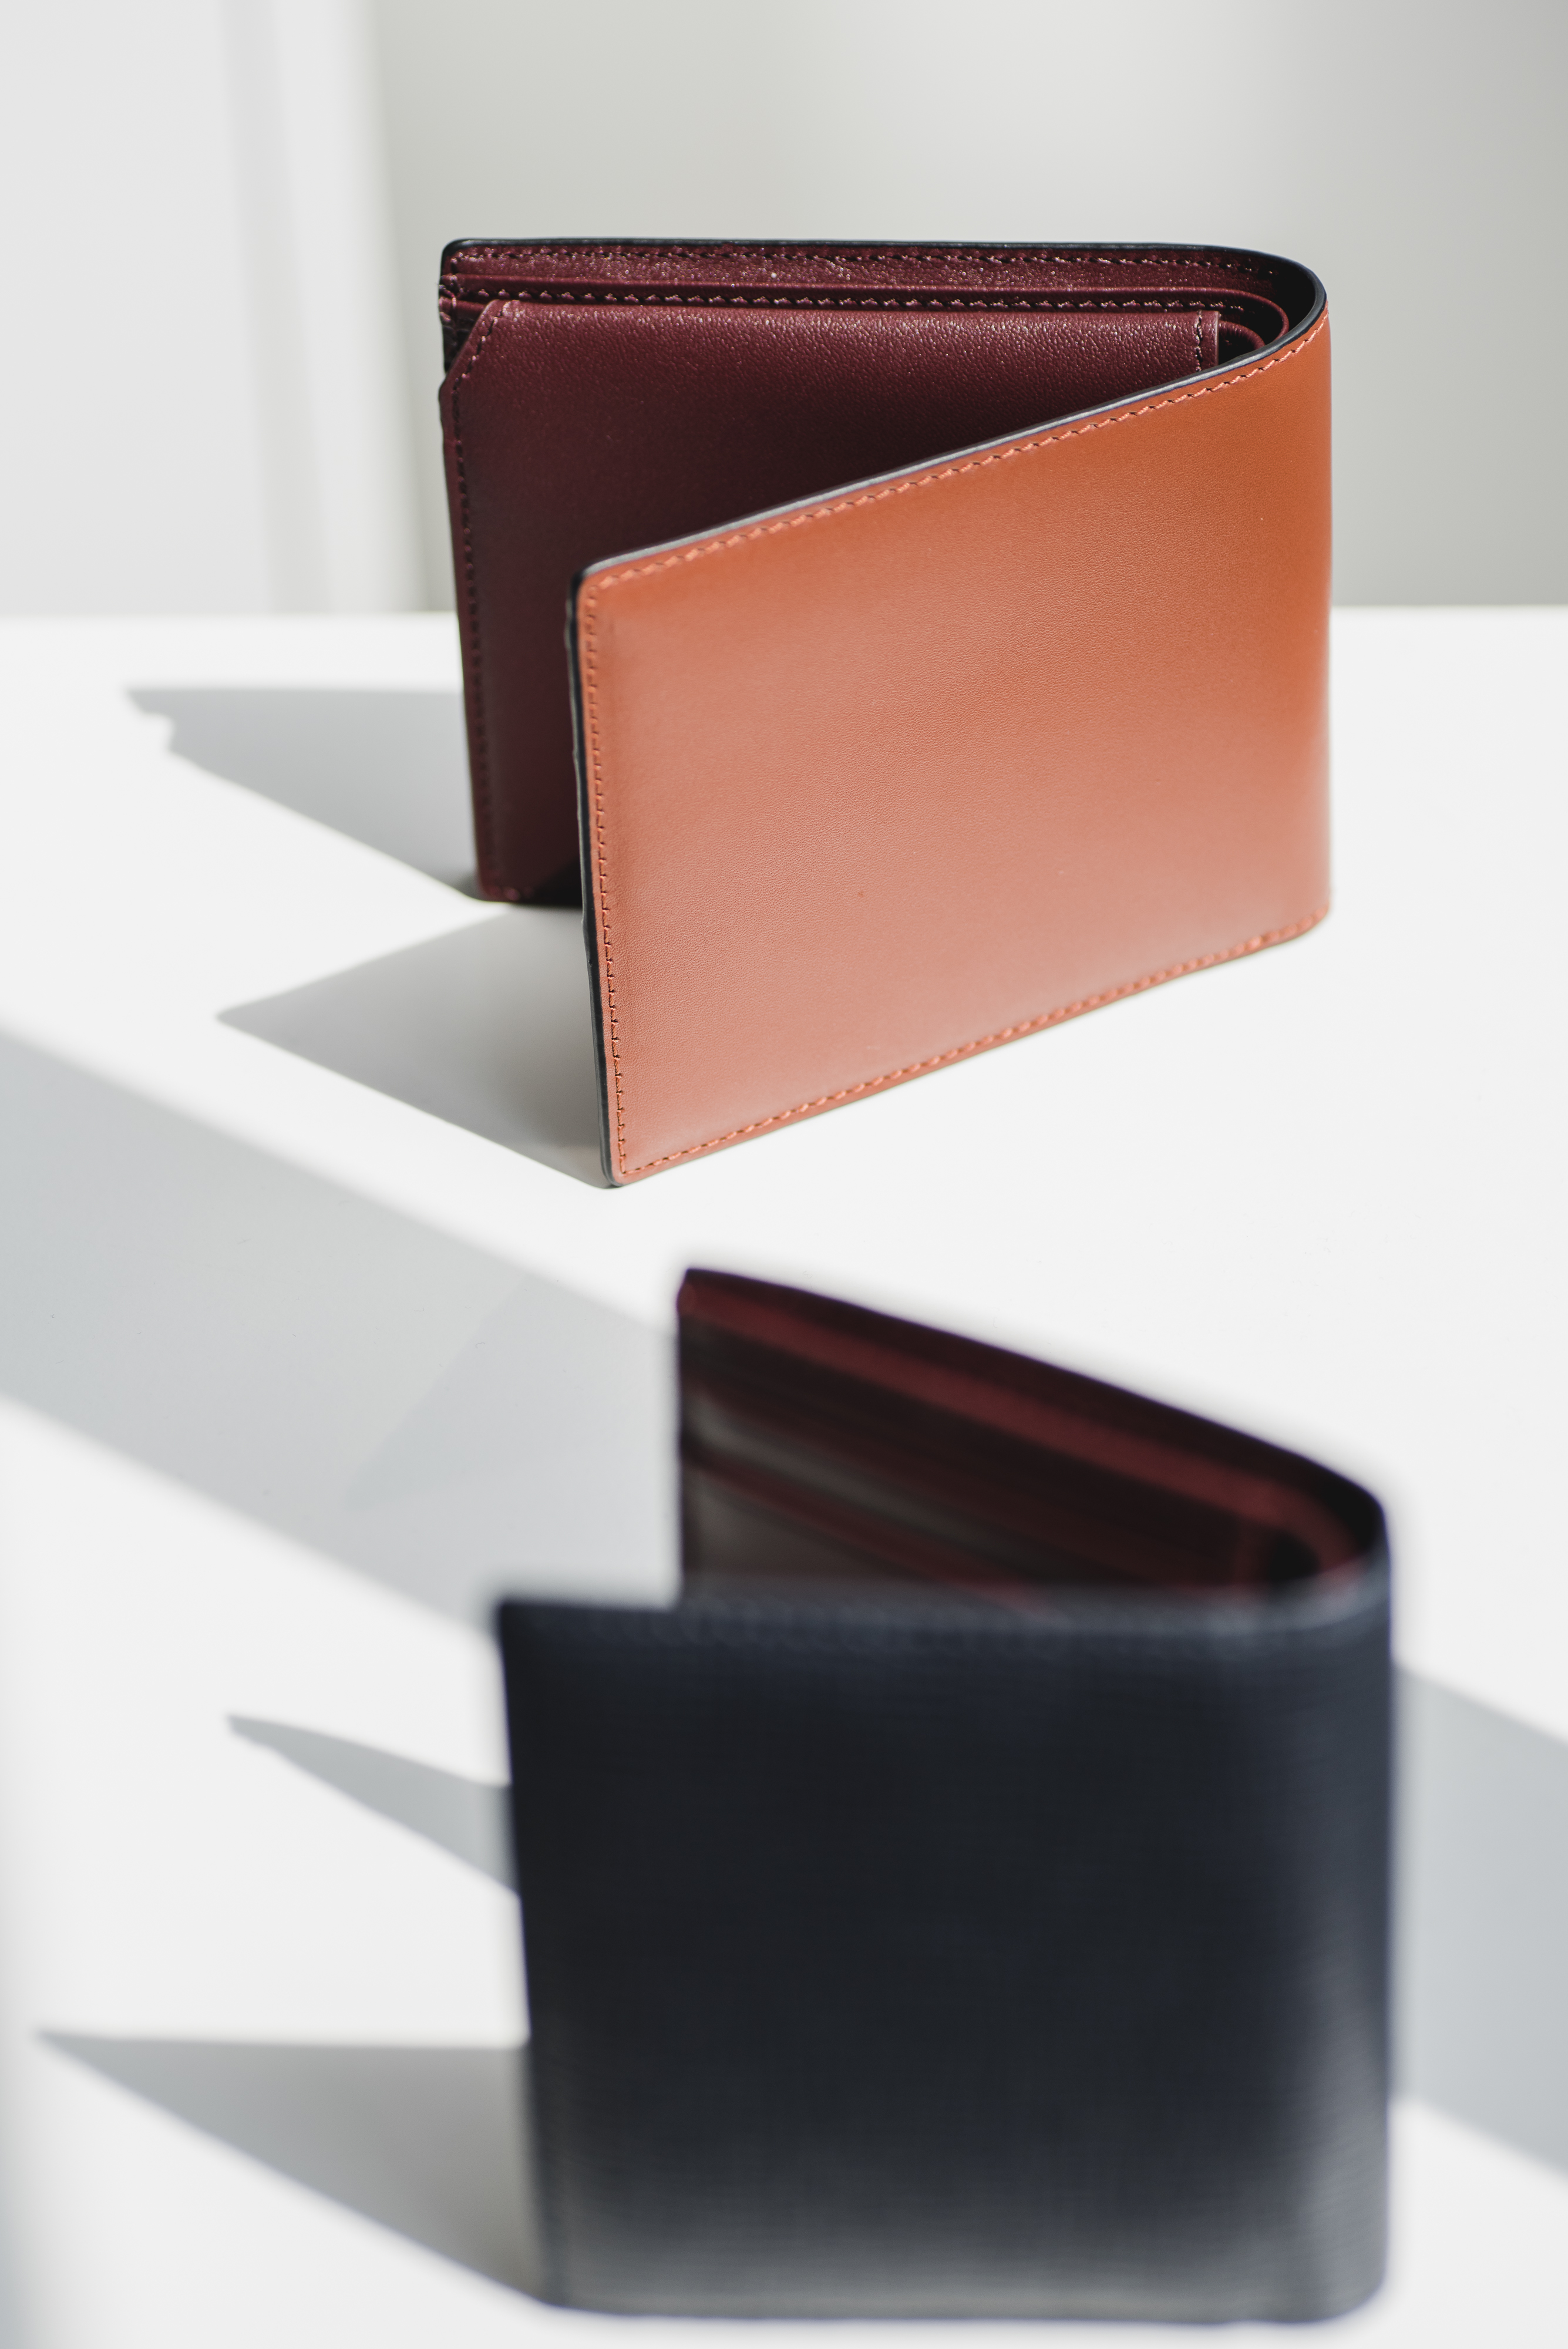 Faire Leather Co - Wallets-5